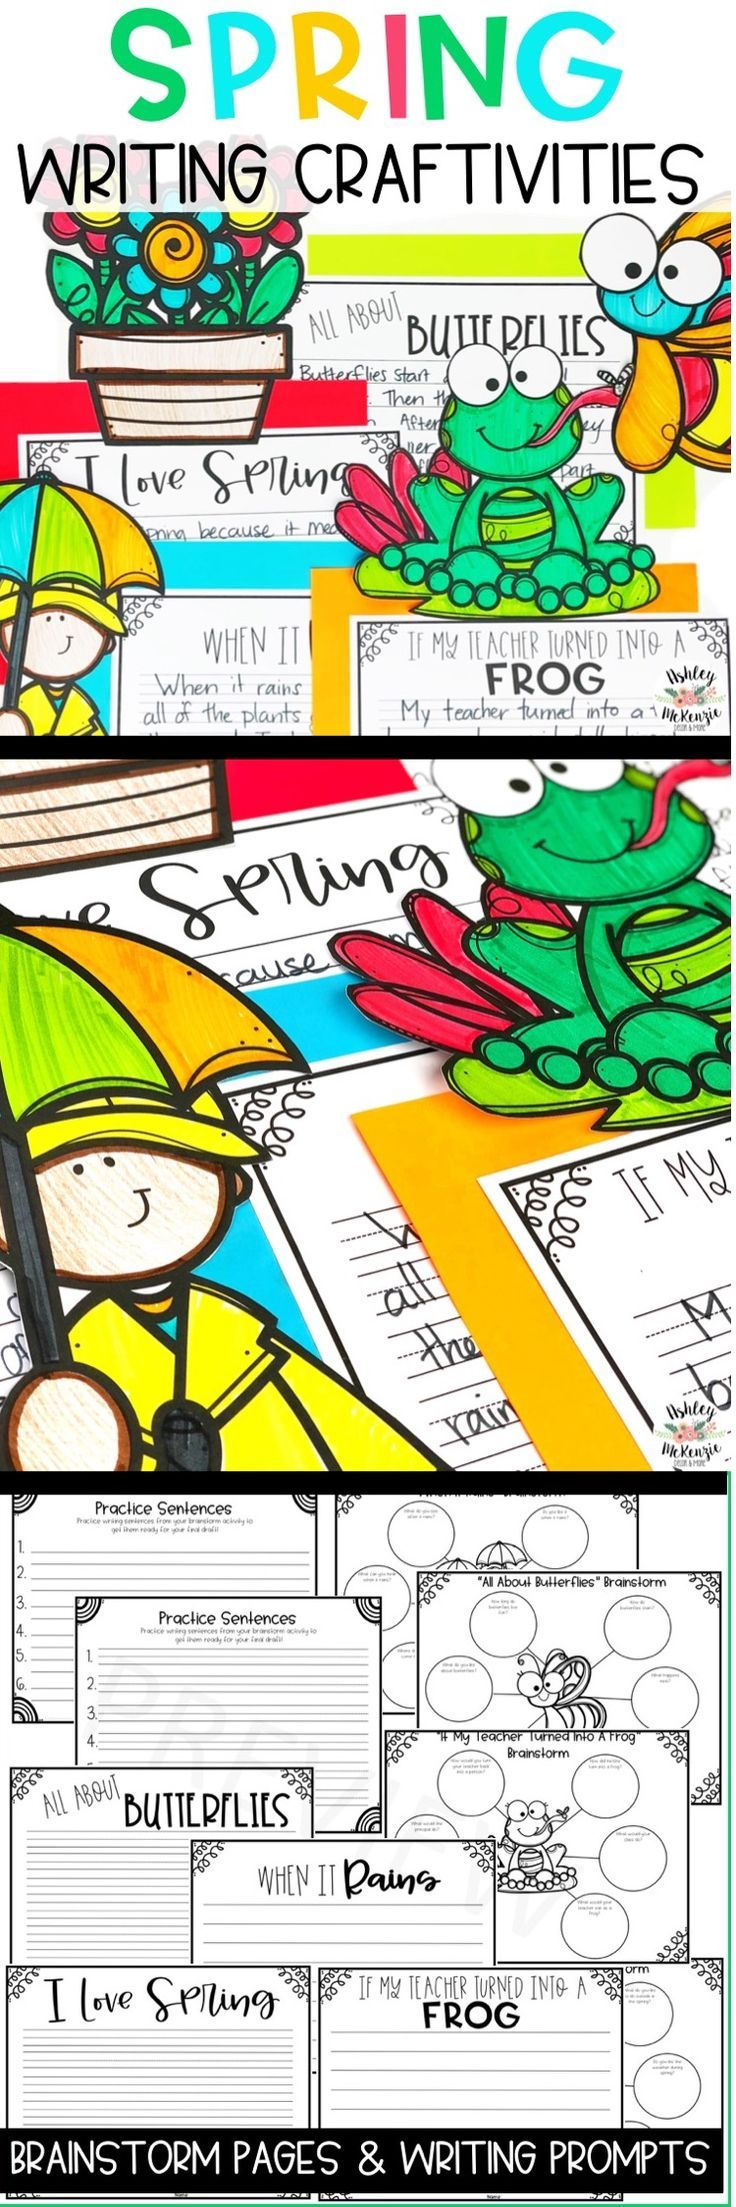 Fun Spring writing craftivities. Write about butterflies, rain, and turning the teacher into a frog! Makes a great spring bulletin board!